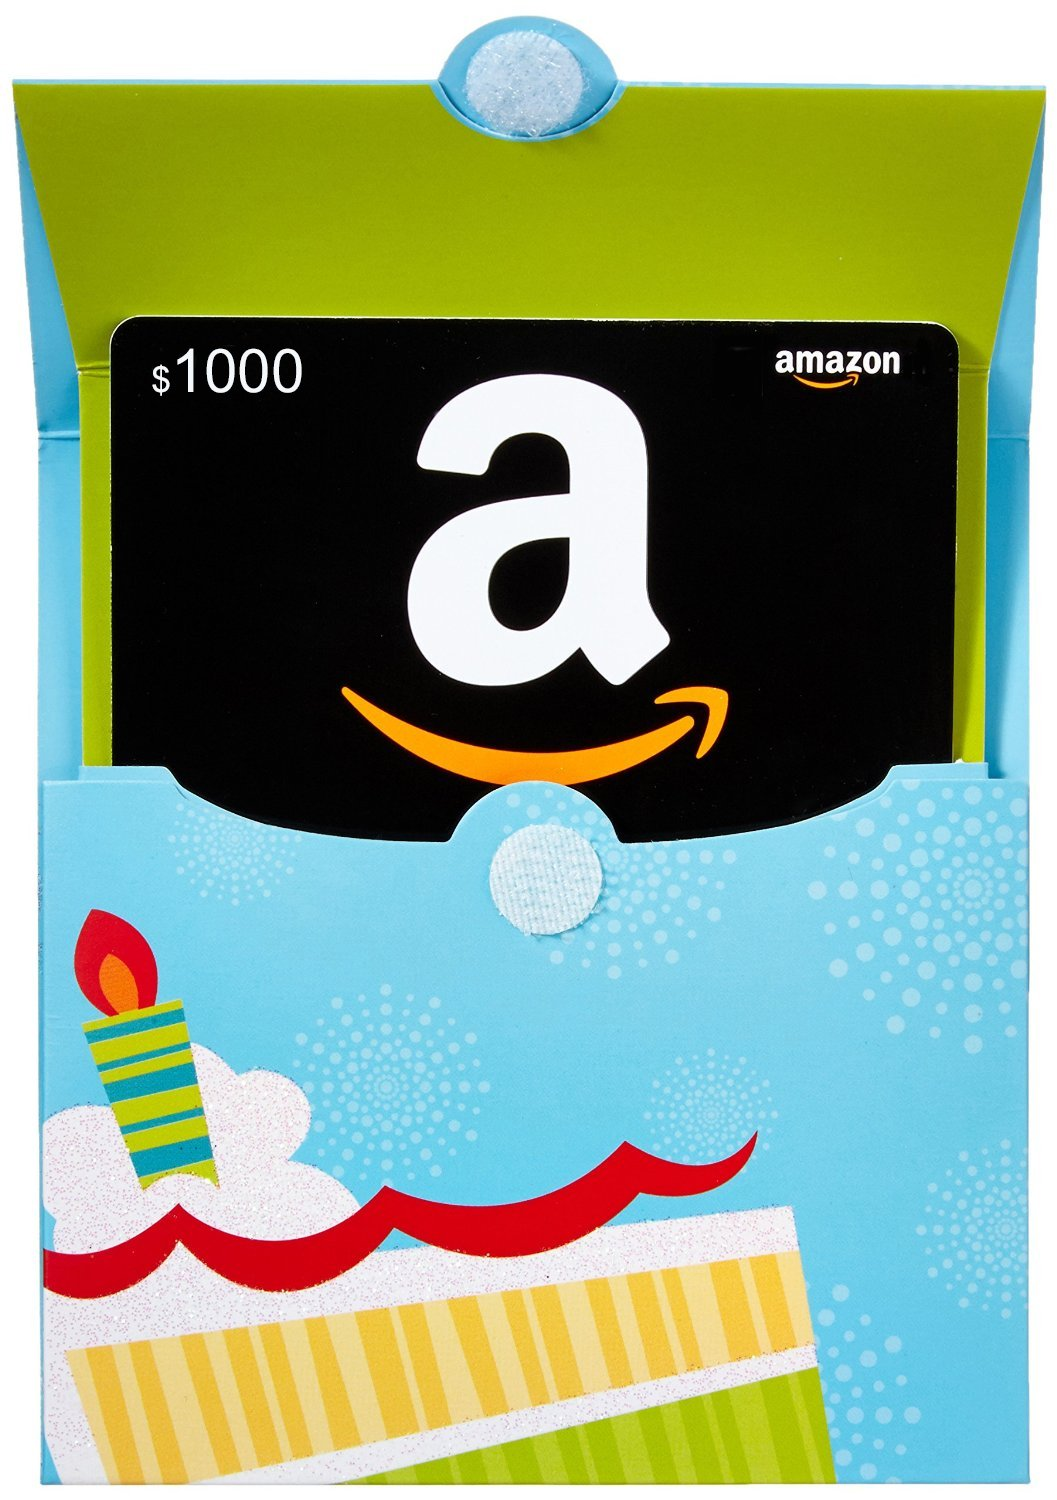 Amazon.ca Card in a Birthday Pop-Up (Classic Black Card Design) Amazon.com.ca Inc.